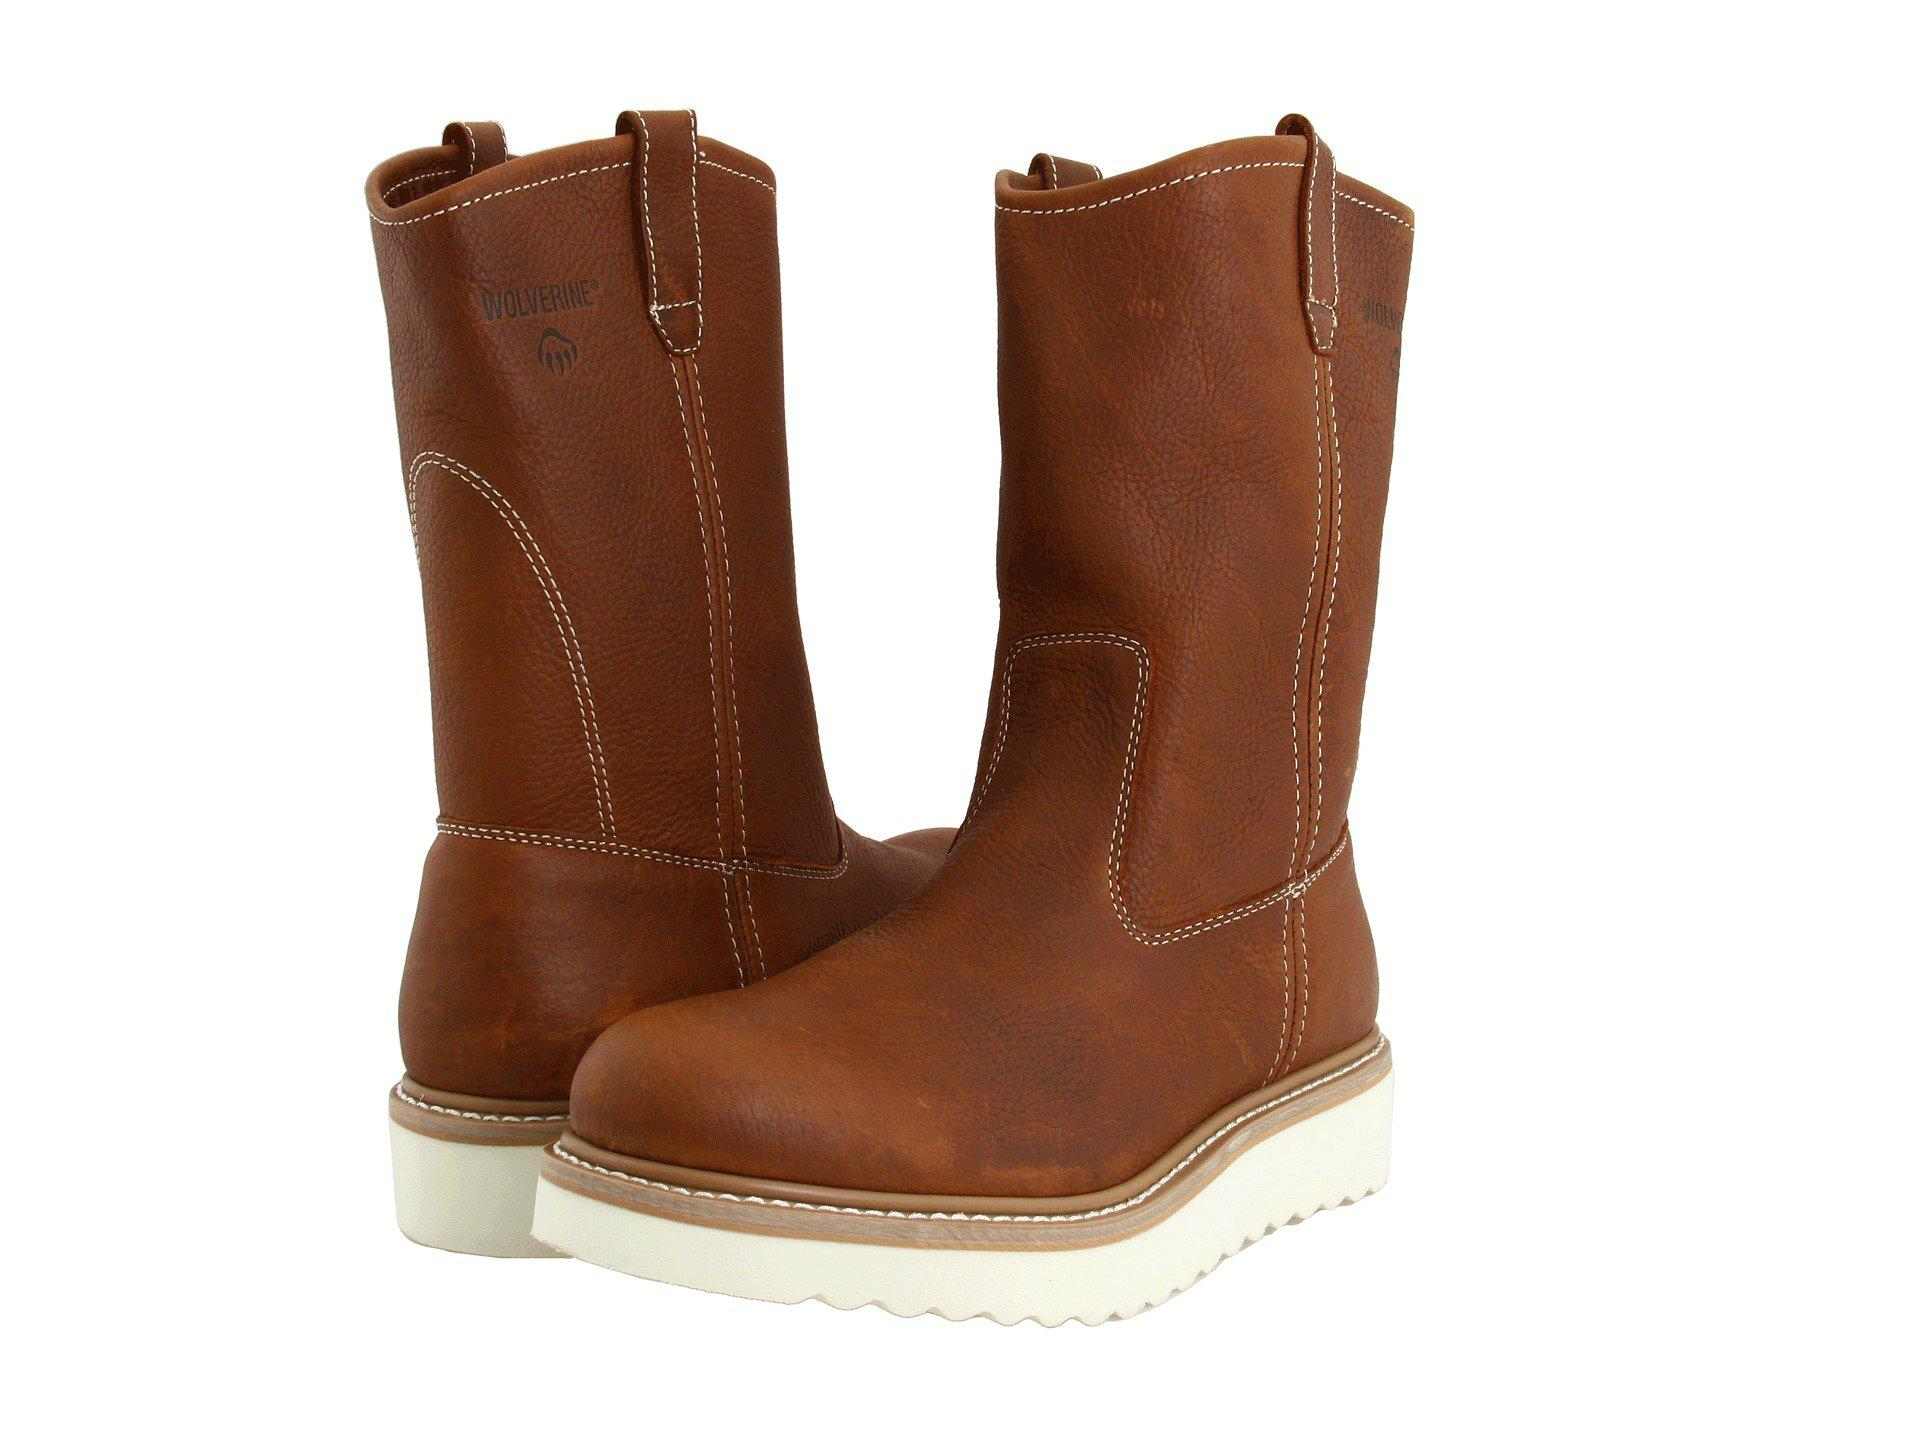 067c0540377 Lyst - Wolverine W08285 Boot in Brown for Men